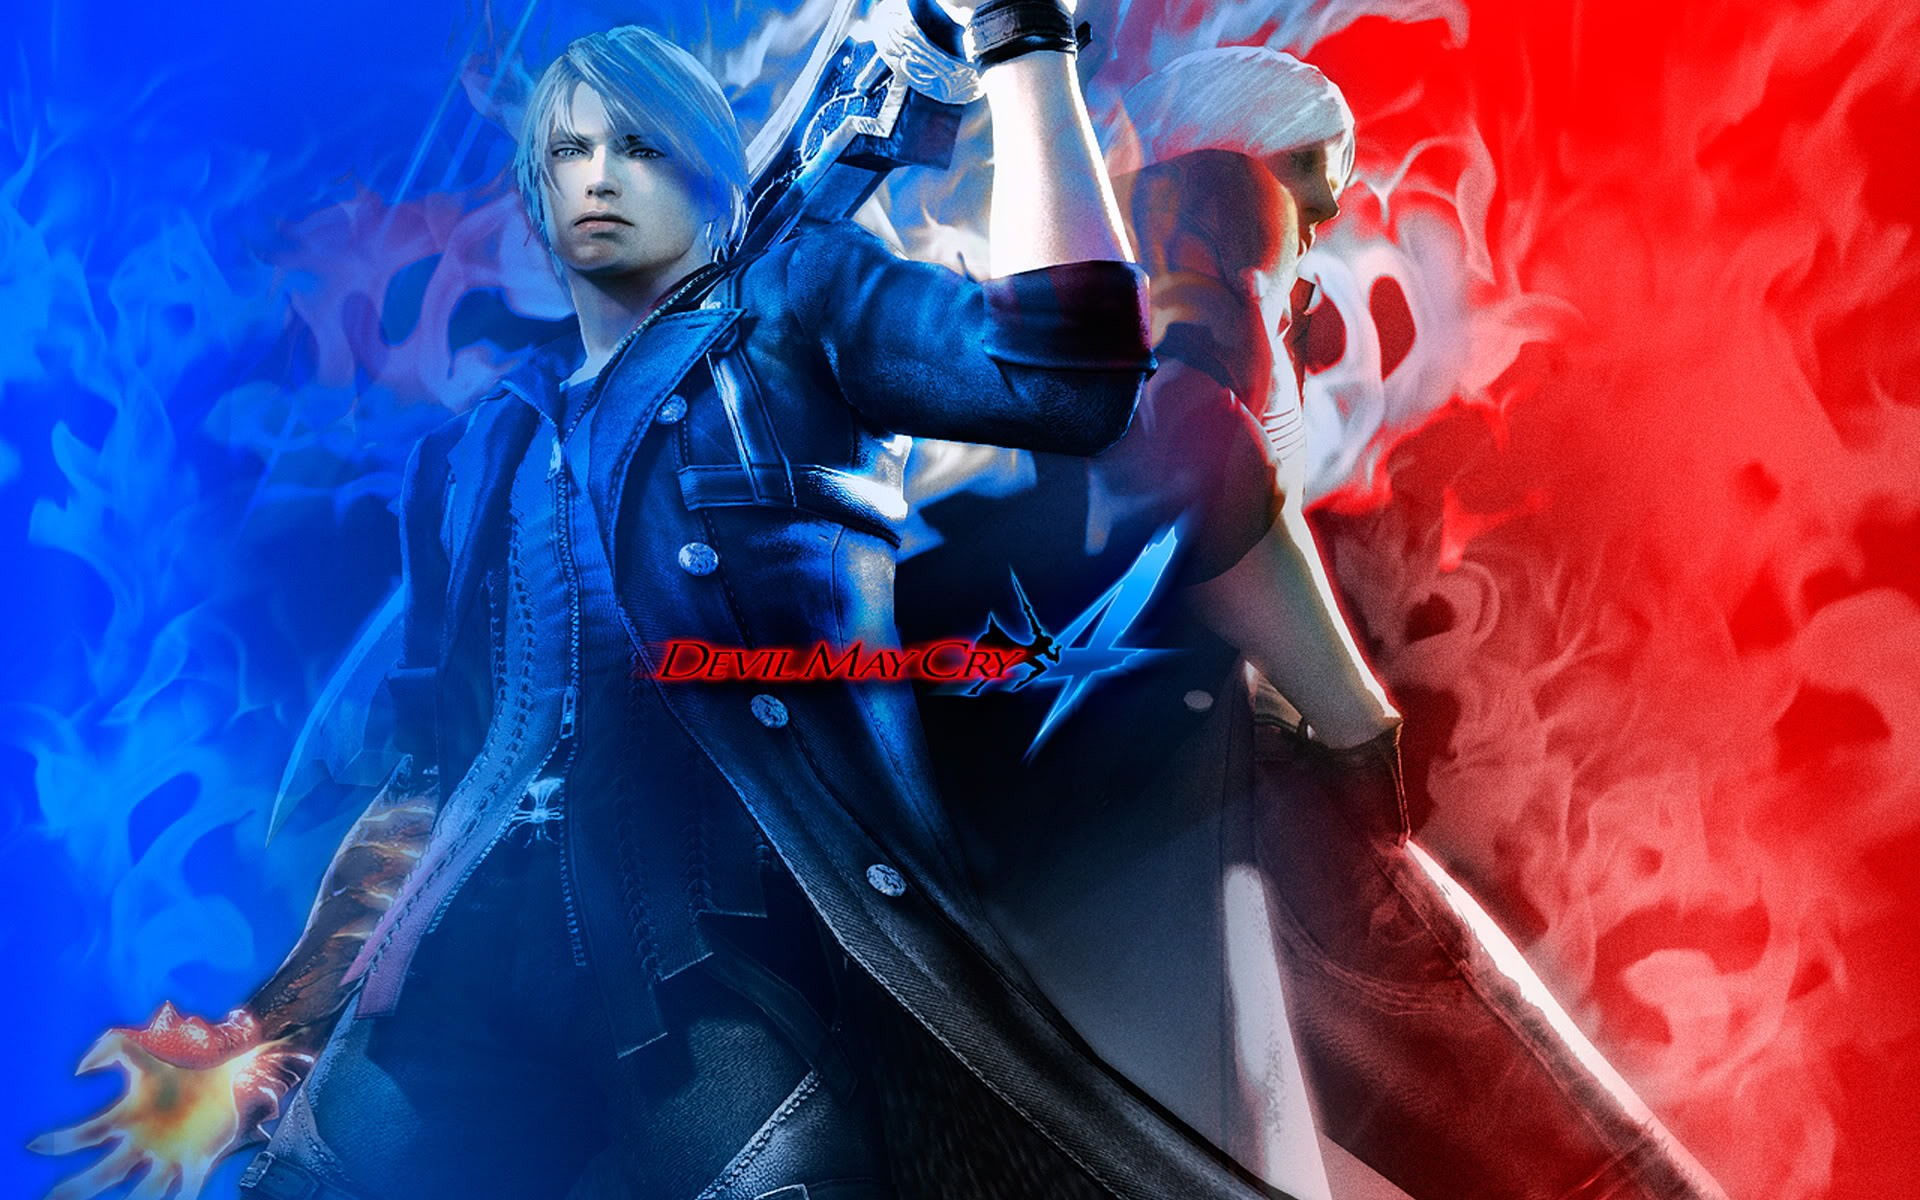 Free Download Devil May Cry 4 Desktop Wallpaper 1920x1200 For